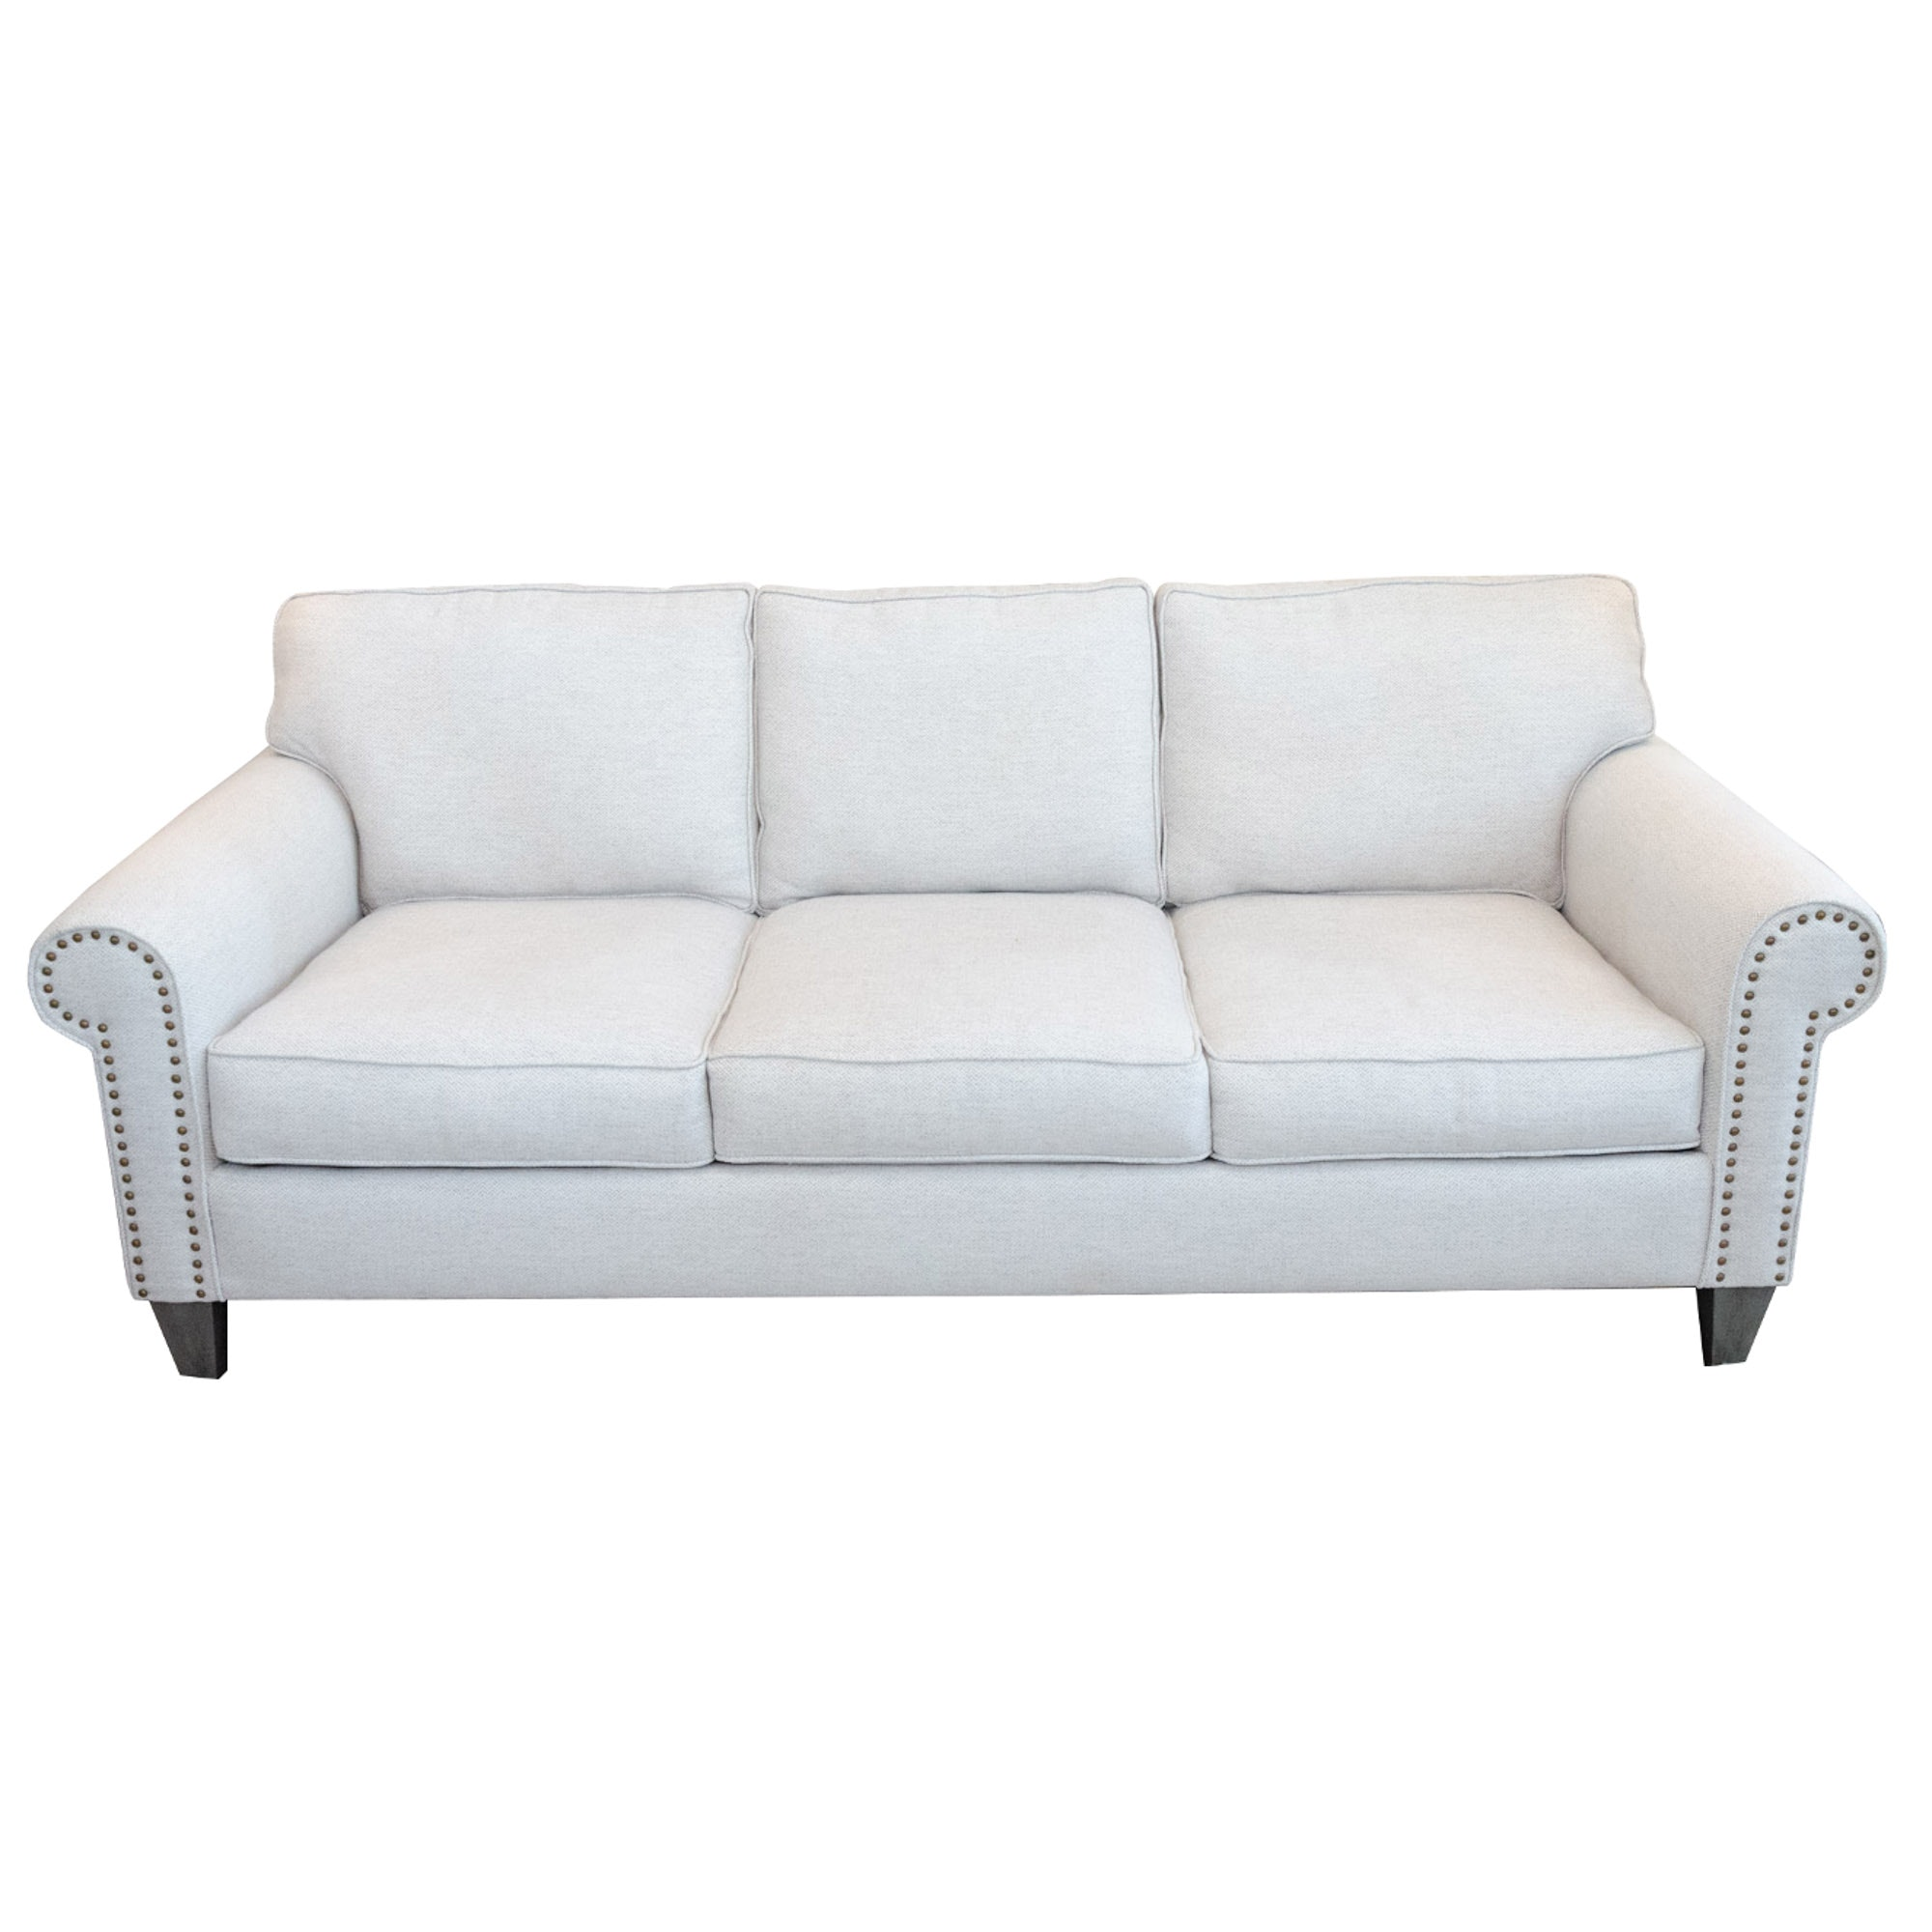 Rowe Furniture Light Grey Upholstered Sofa, Contemporary